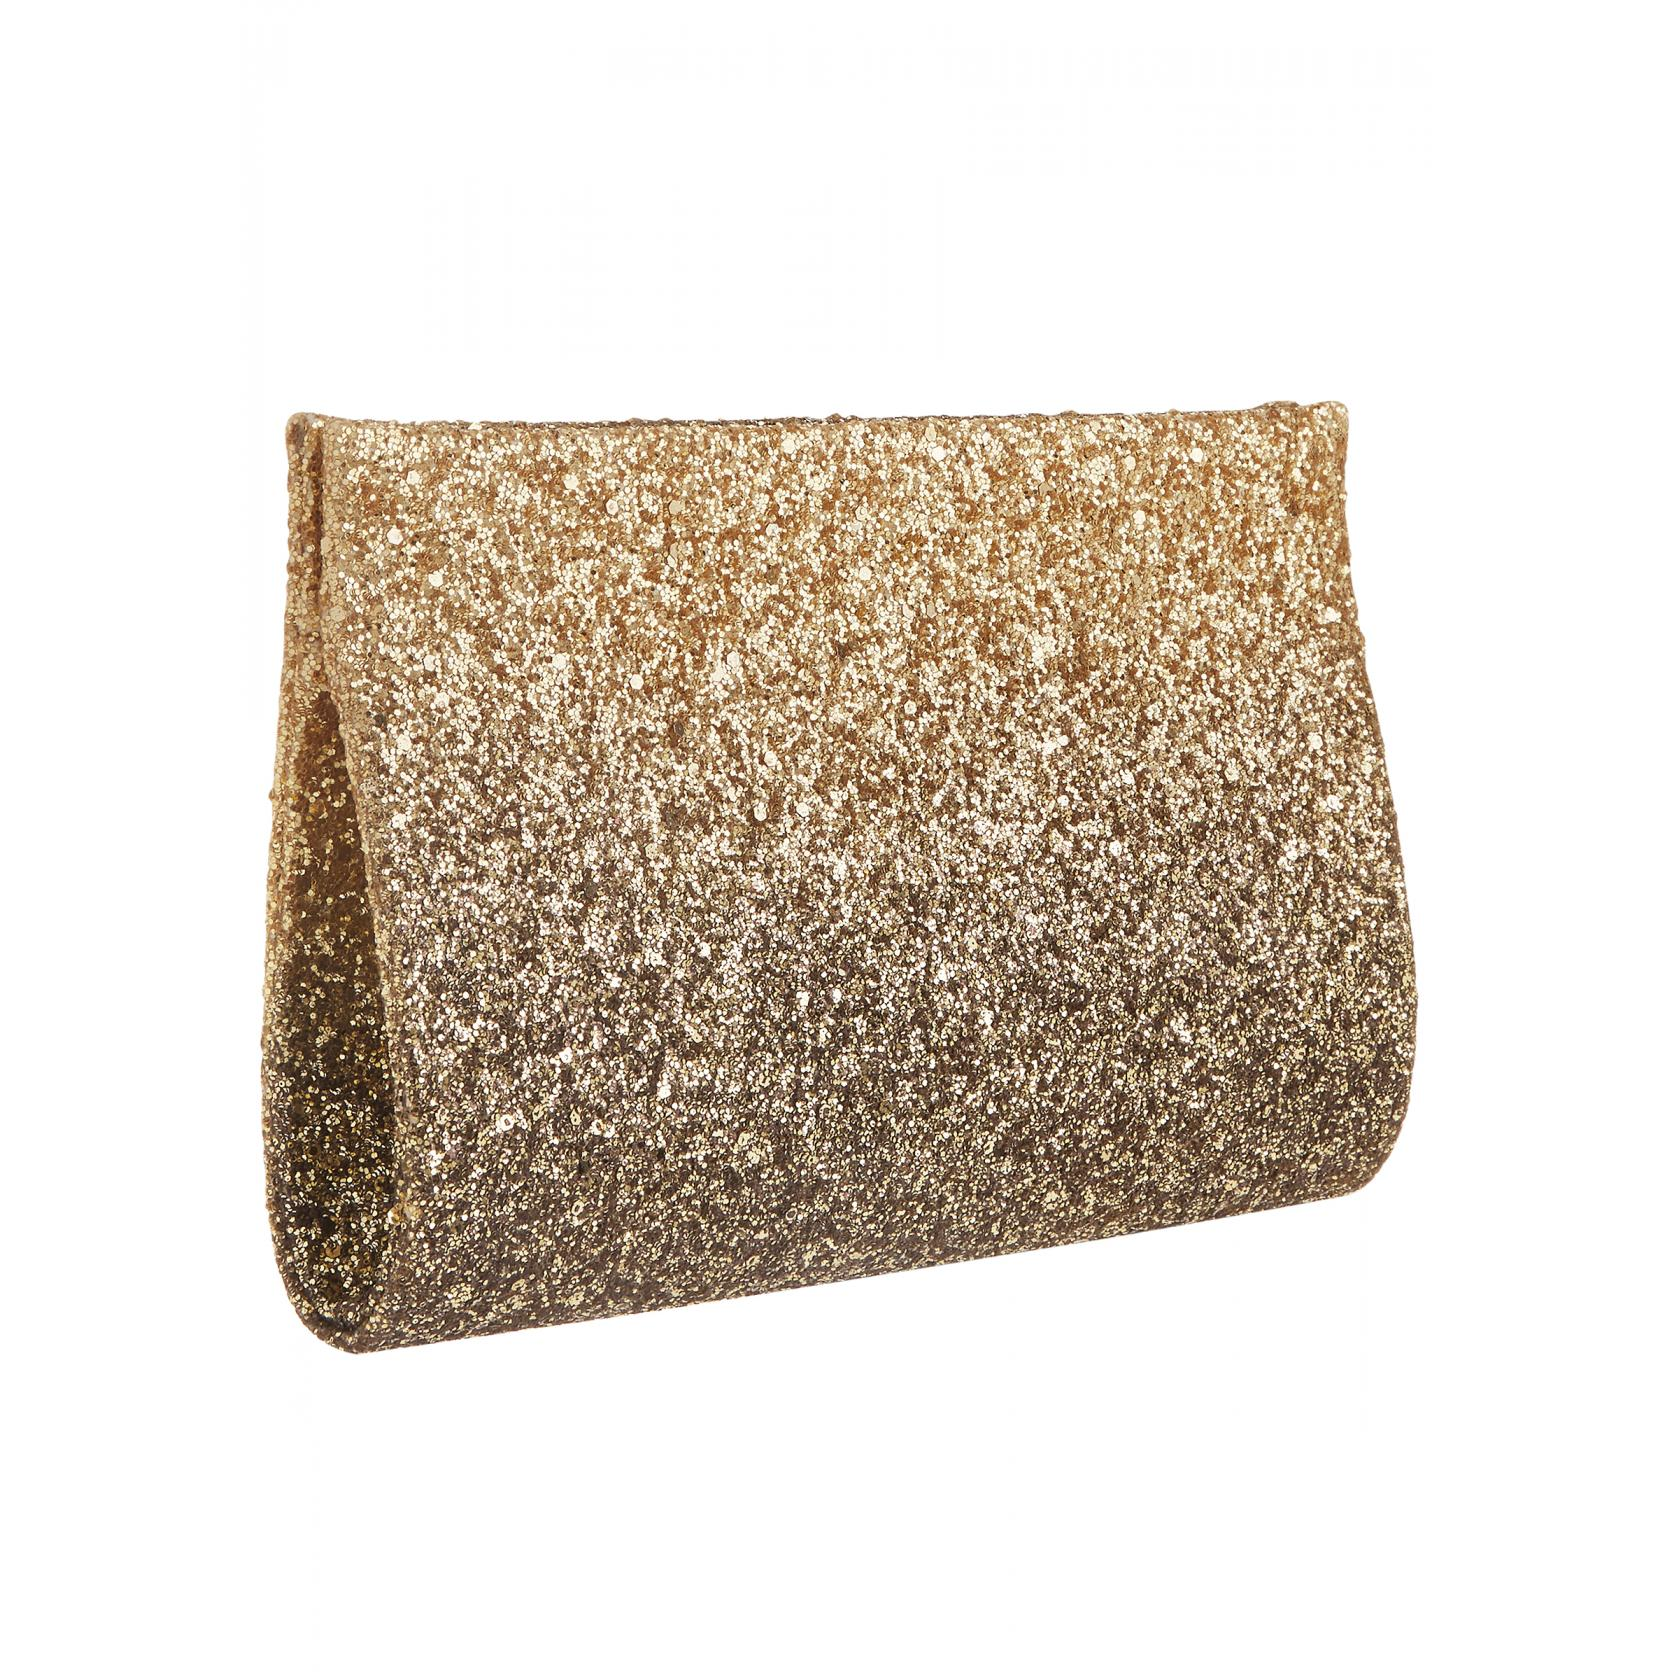 Mascare Gold Ombre Clutch Bag